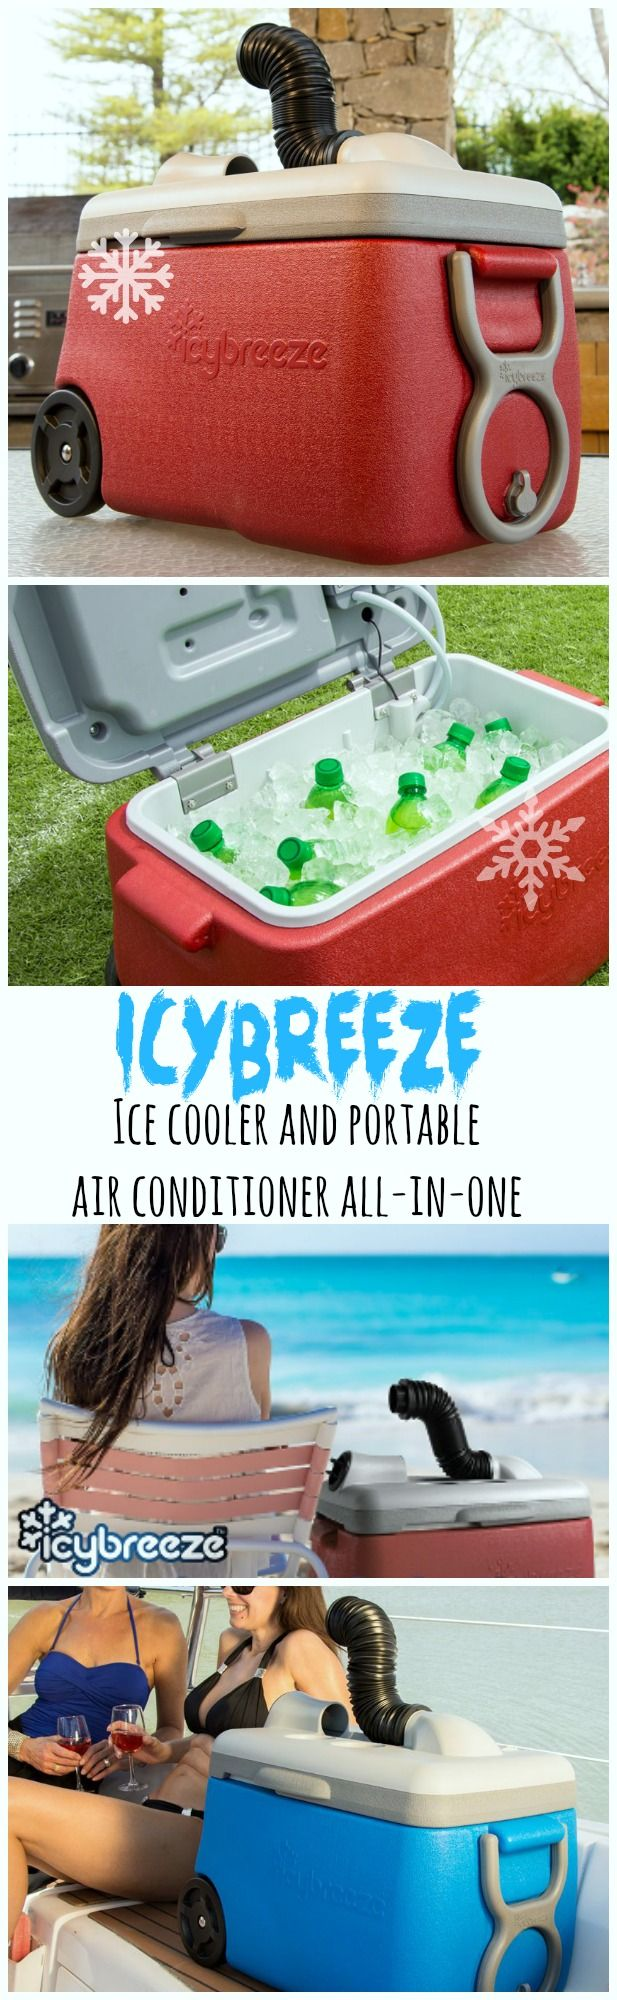 Beat the heat wherever you are with the IcyBreeze portable